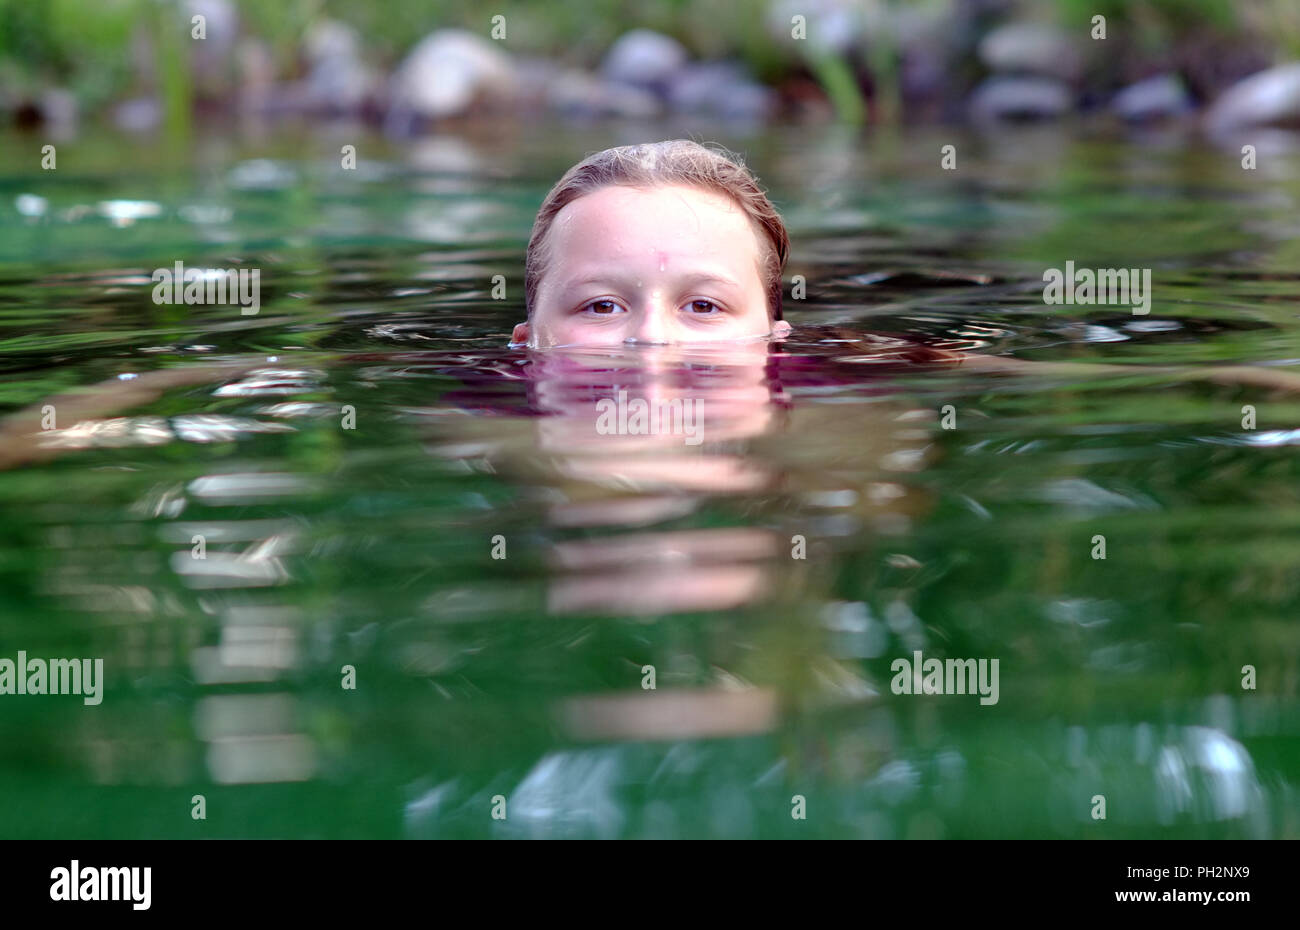 Girl half submerged swimming in a natural pool. Stock Photo